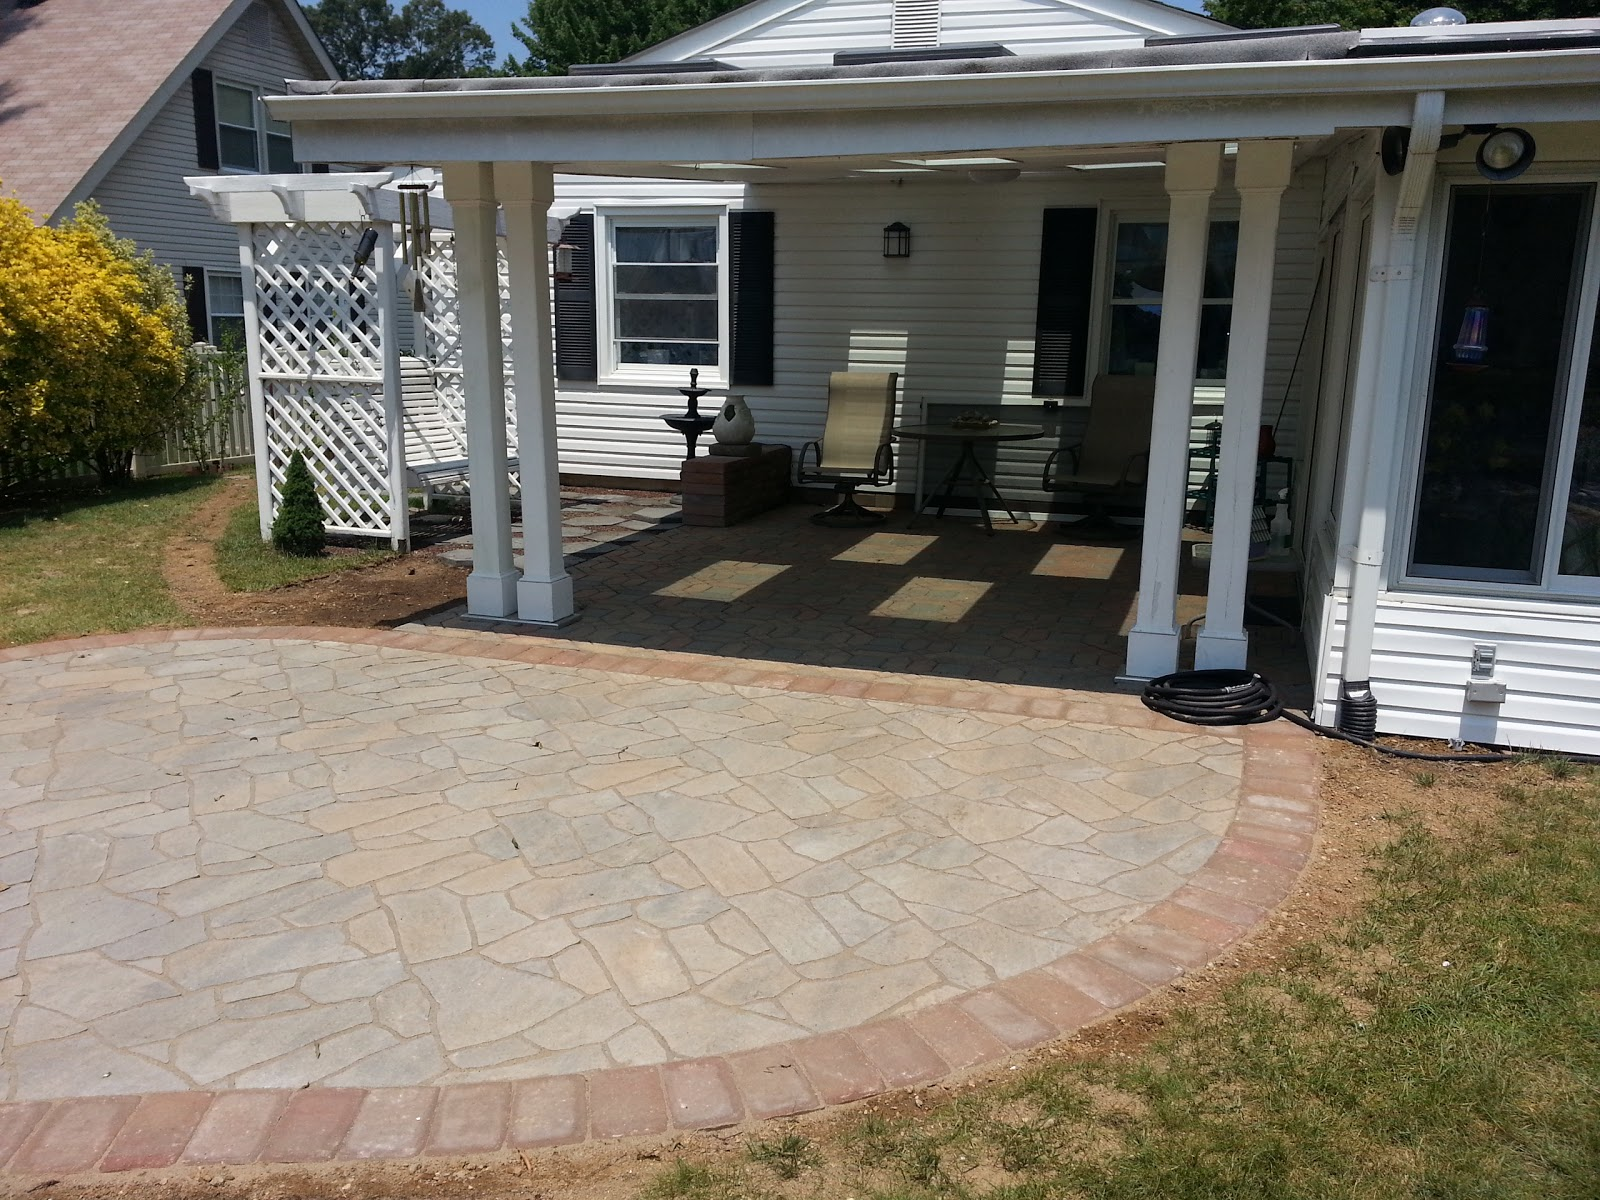 Flagstone Patio Pavers : Life time pavers flagstone paver patio in bowie md